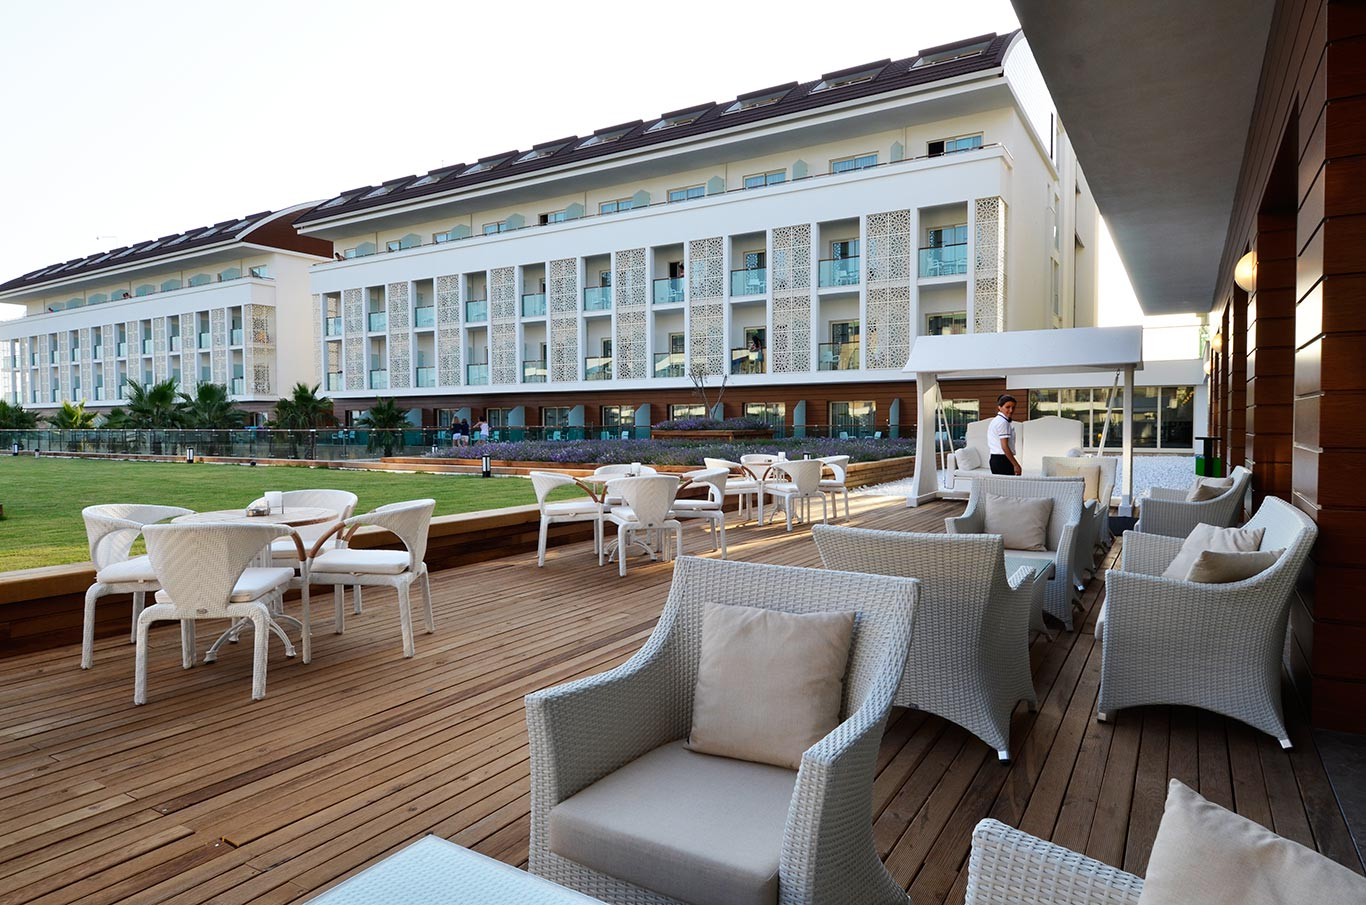 Sentido Trendy Hotels Verbena Beach